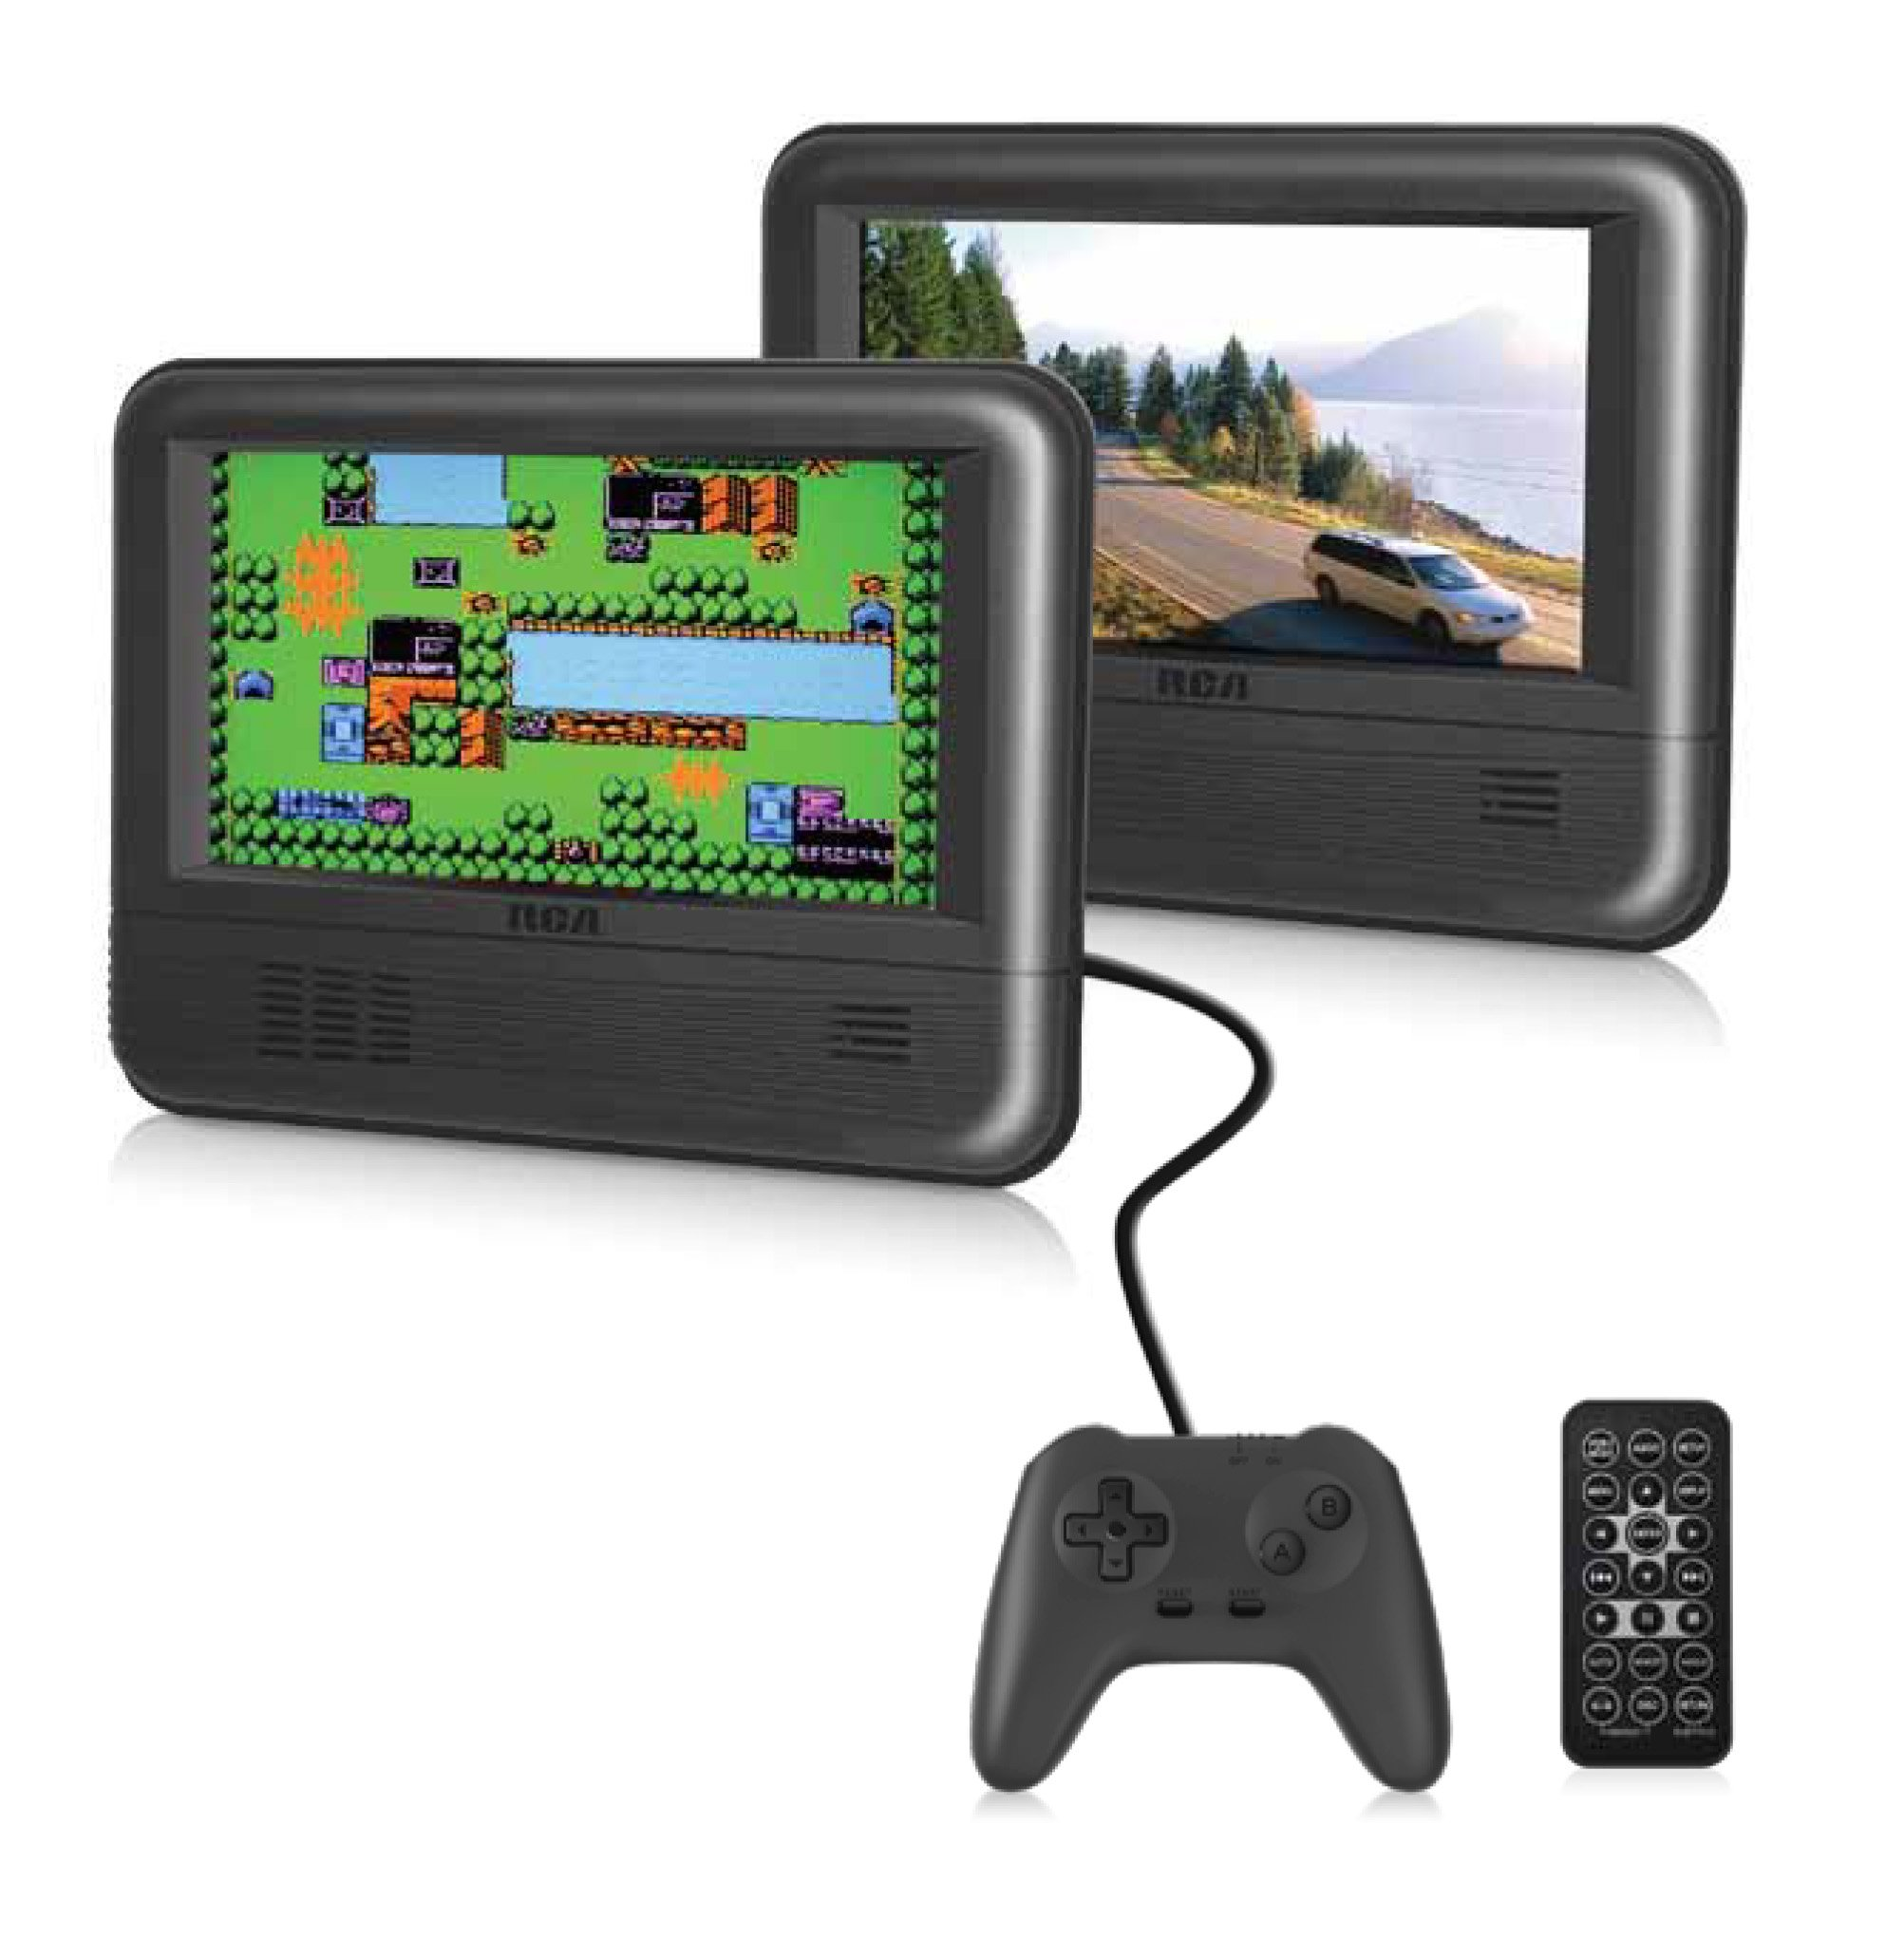 RCA Dual Screen Portable DVD Player & Game Pad System - Set of Two 7'' Screens, (6-Piece Kit) - (DRC62705E24G) by RCA